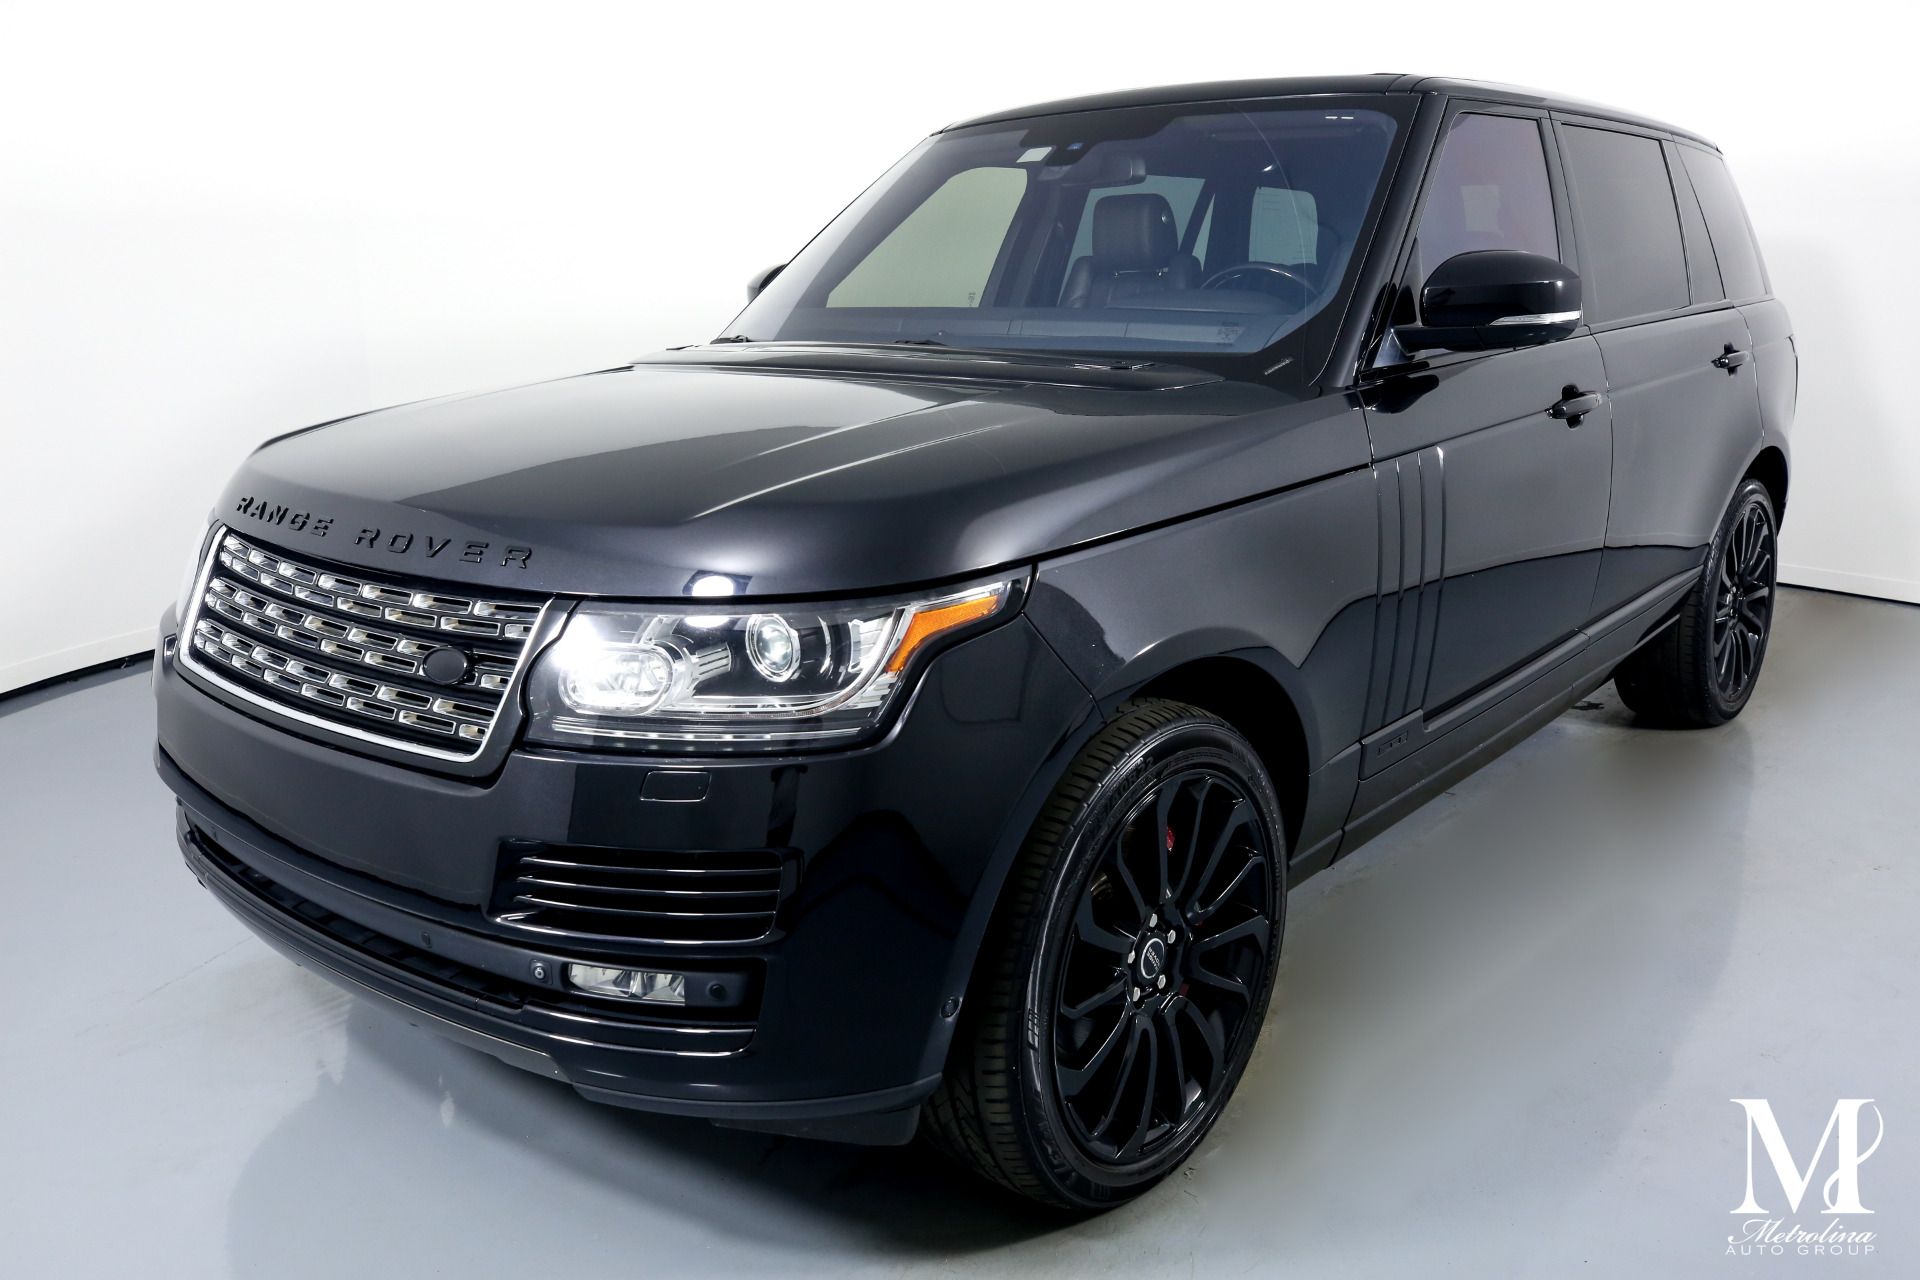 Used 2015 Land Rover Range Rover Supercharged LWB for sale $59,996 at Metrolina Auto Group in Charlotte NC 28217 - 4